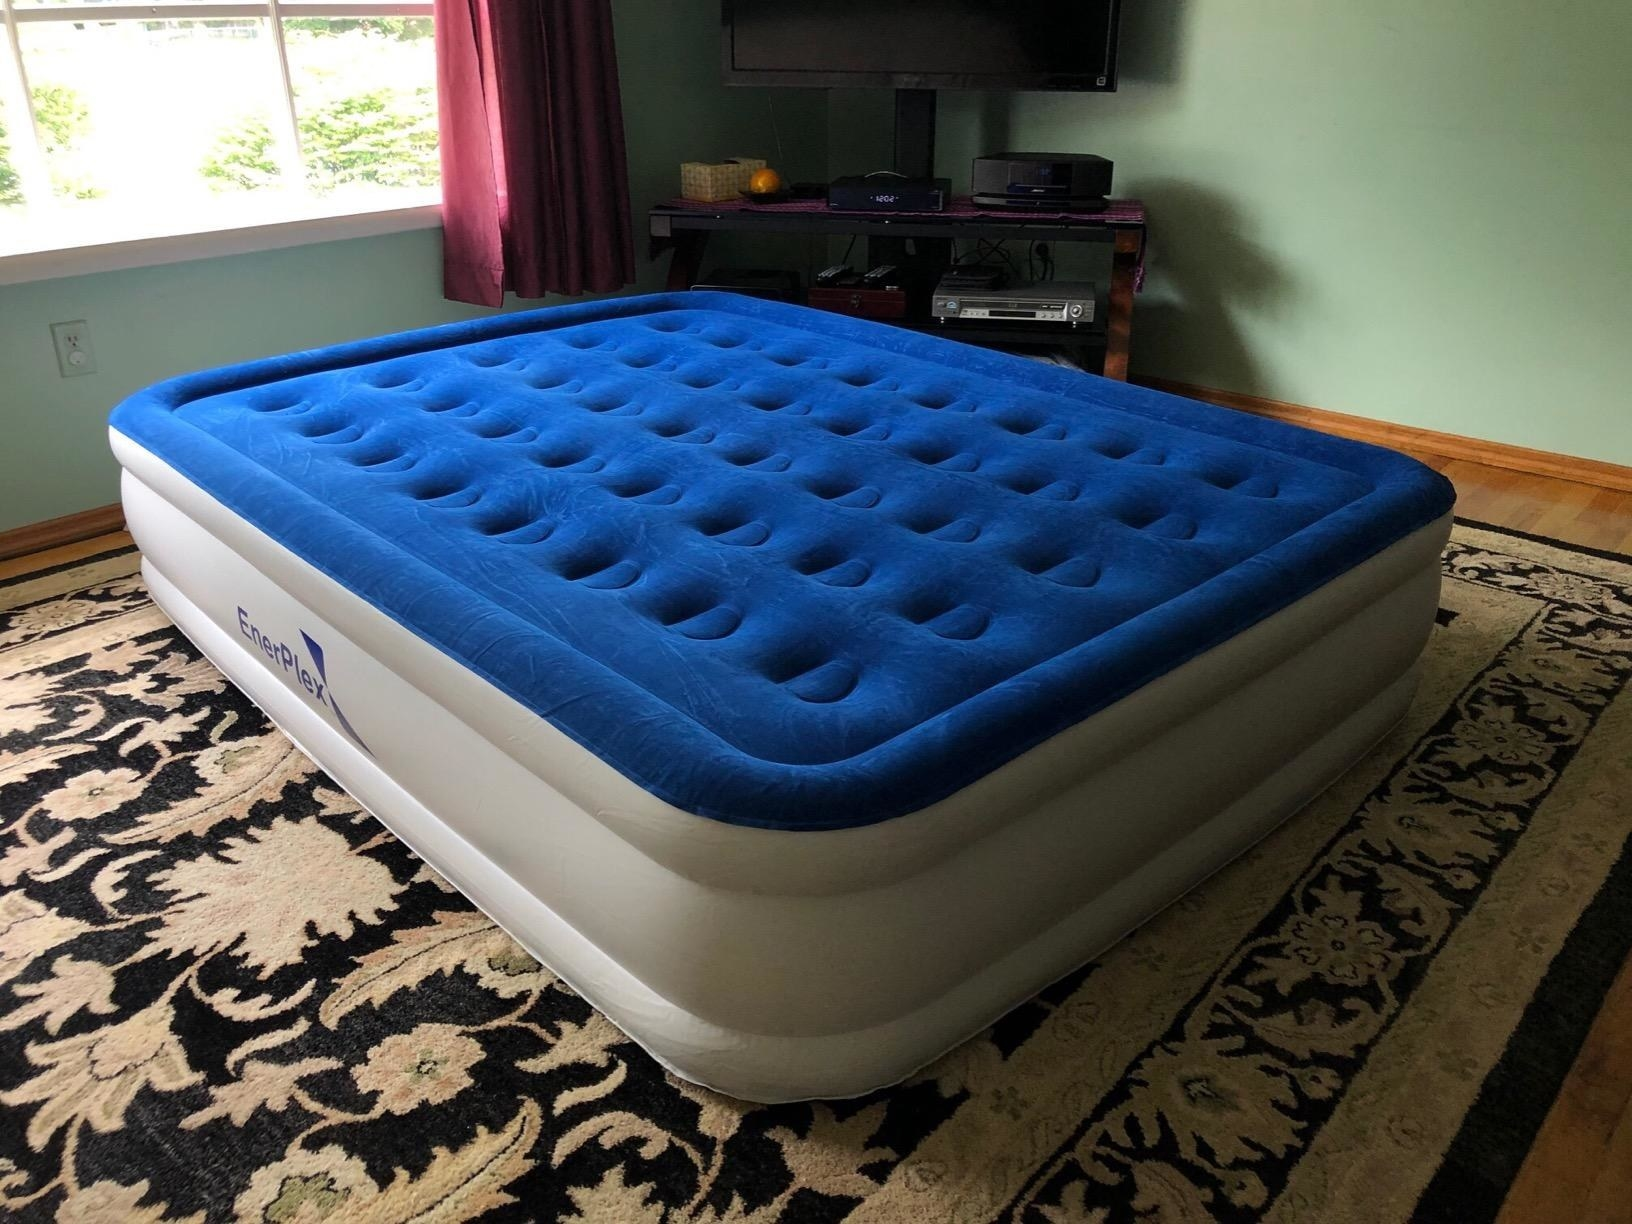 Reviewer showing blue flock-topped air mattress with never-leak technology